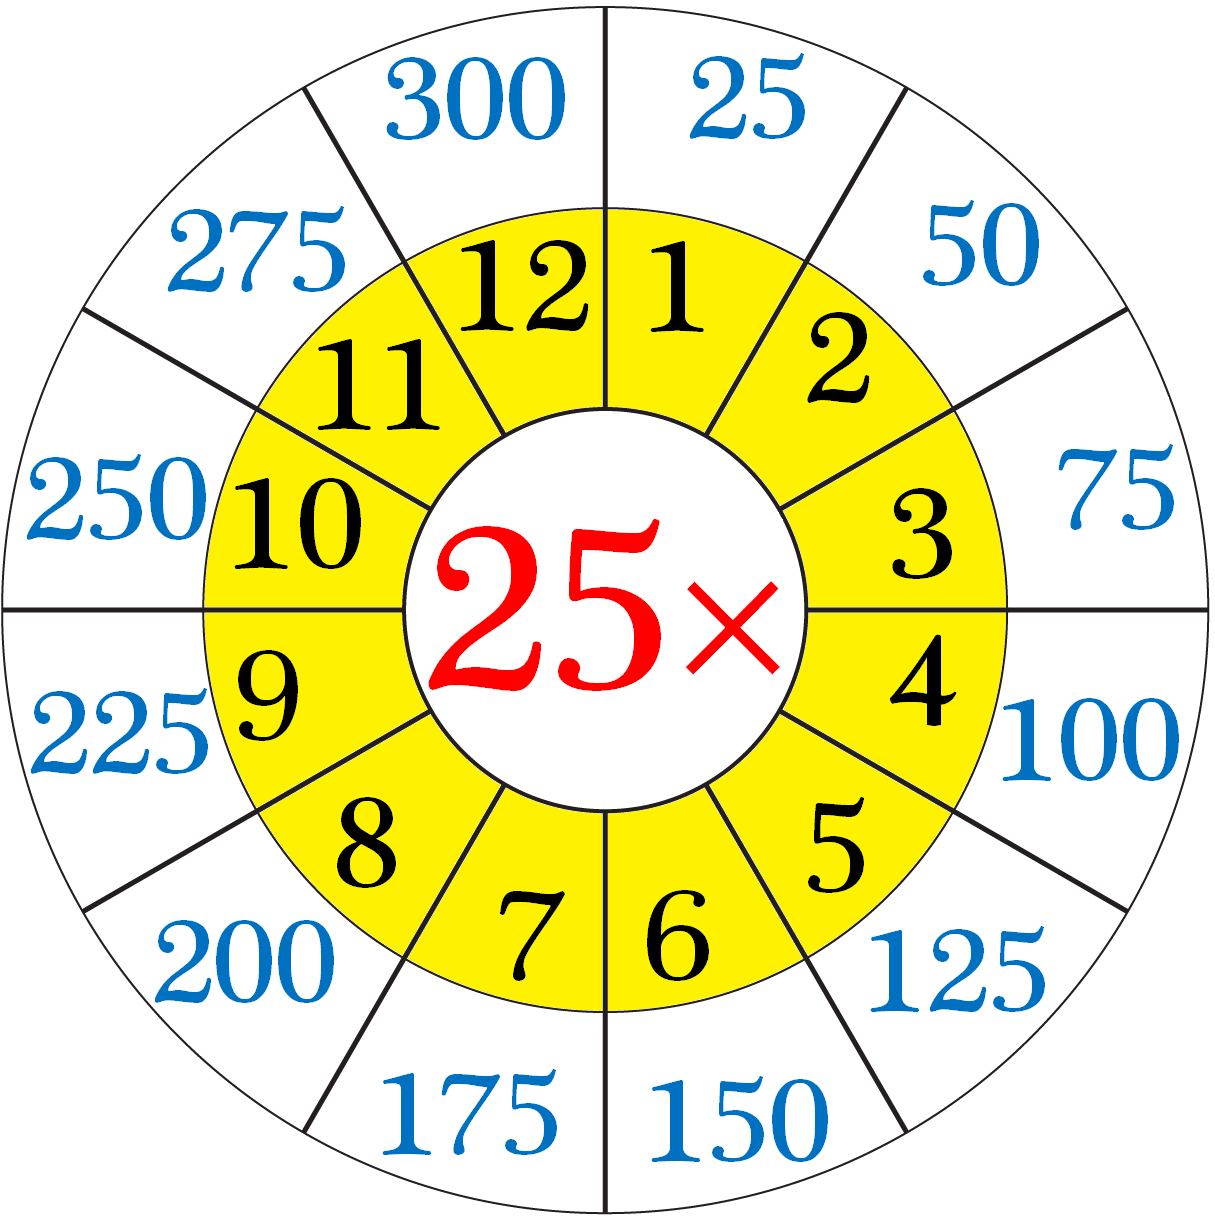 Multiplication Table of 25